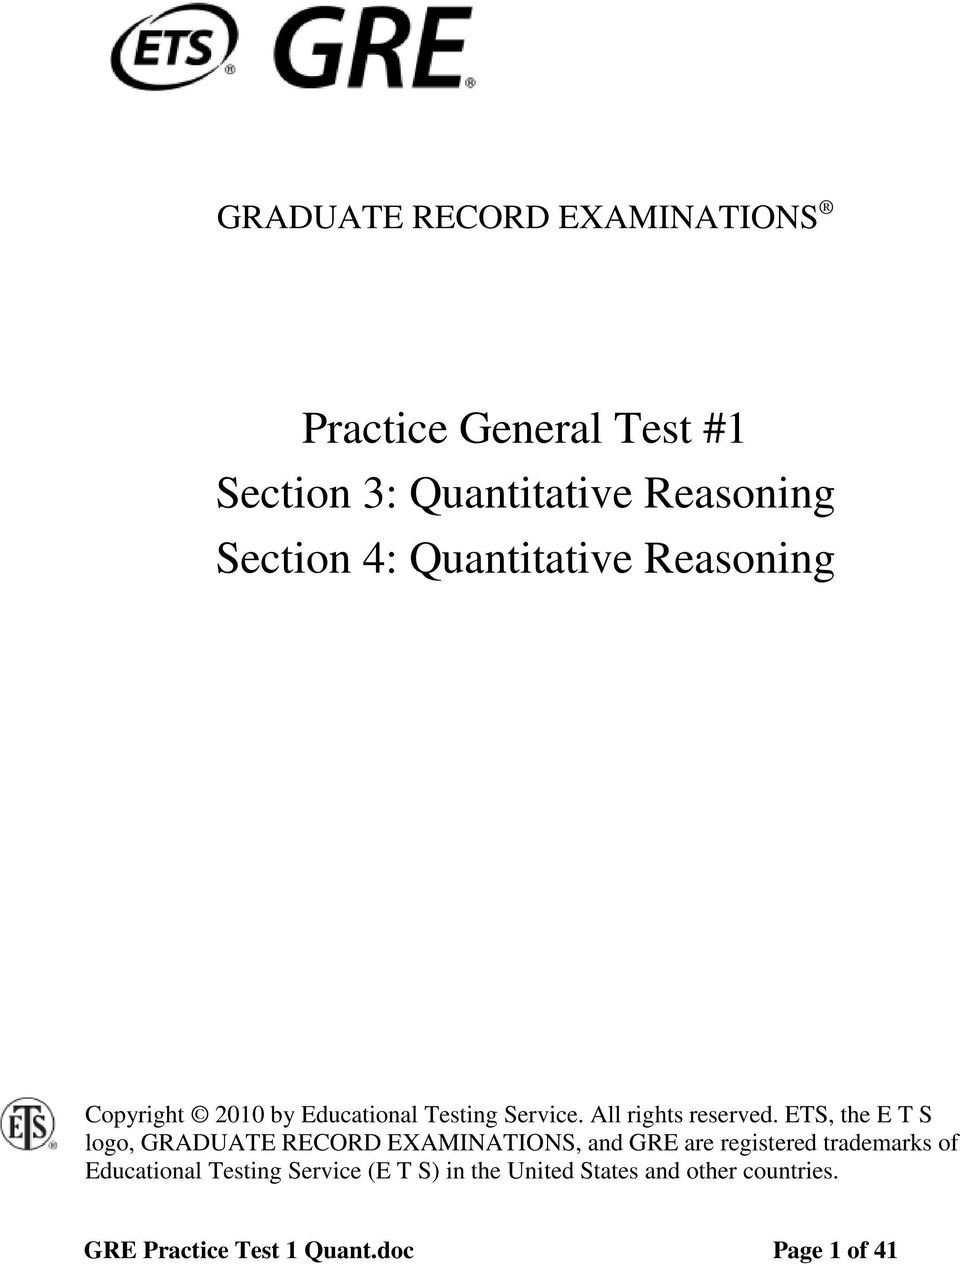 Practice General Test #1 Section 3: Quantitative Reasoning